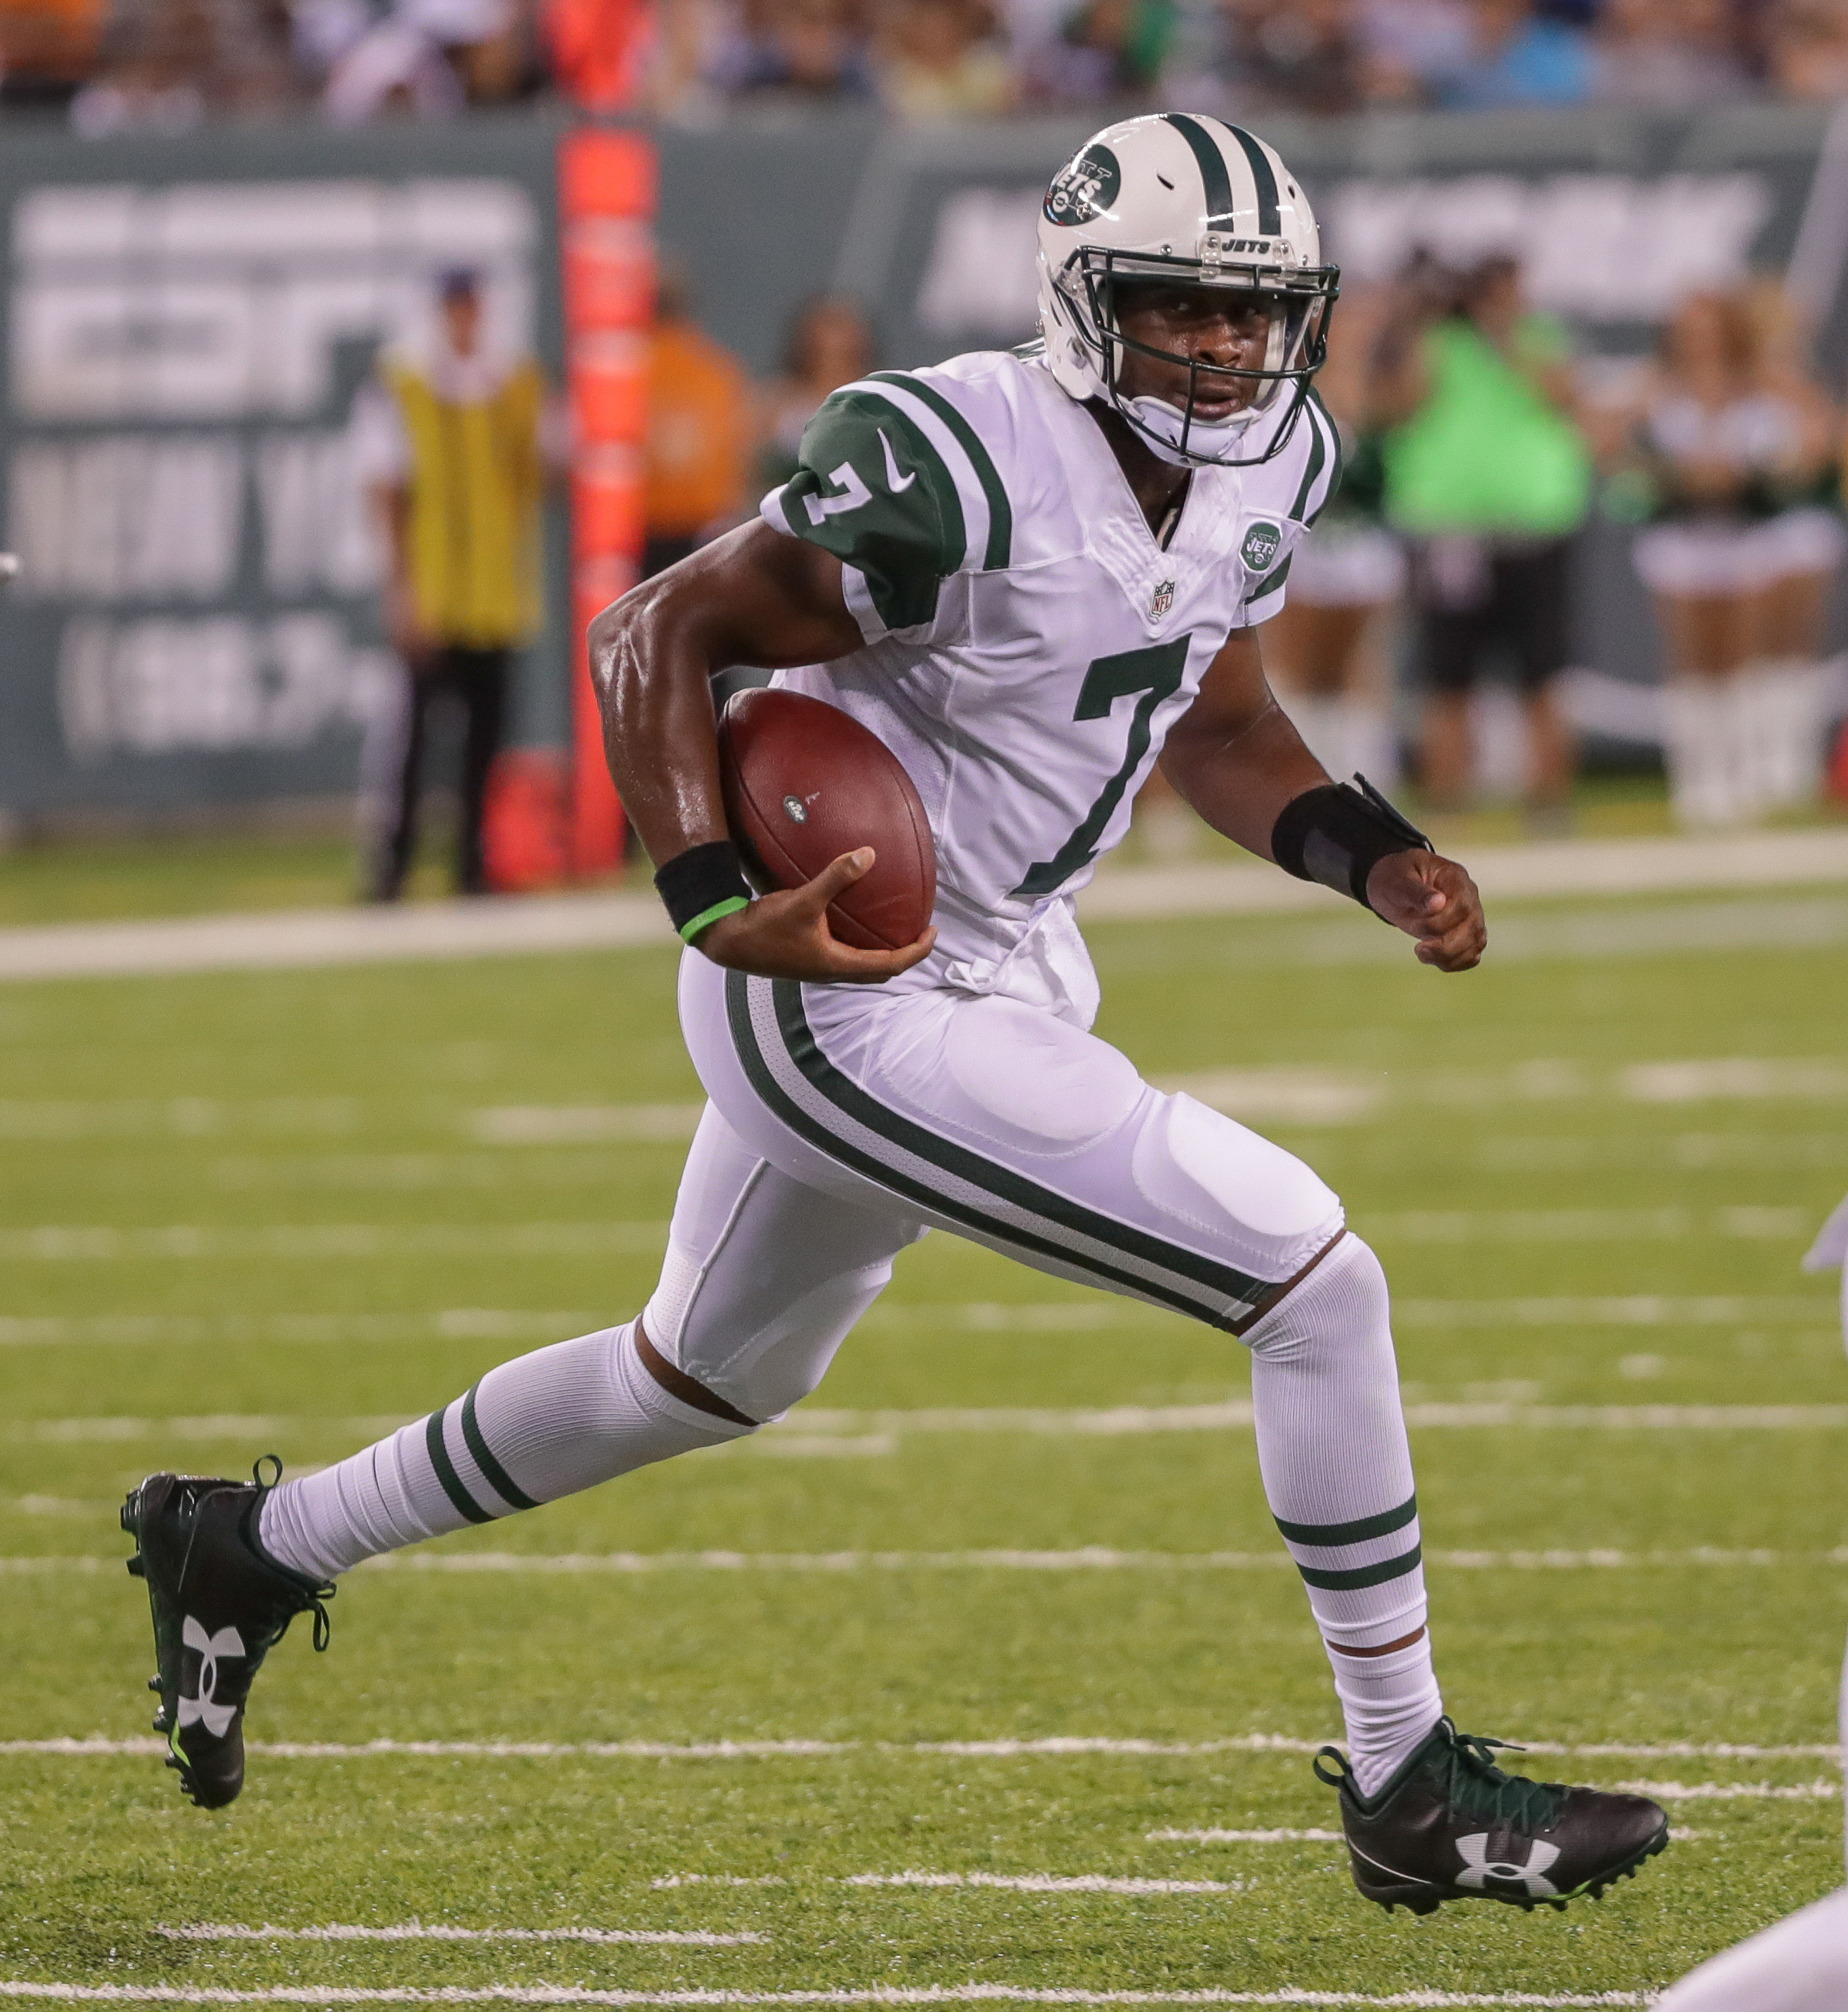 Giants To Sign Ex-Jets QB Geno Smith